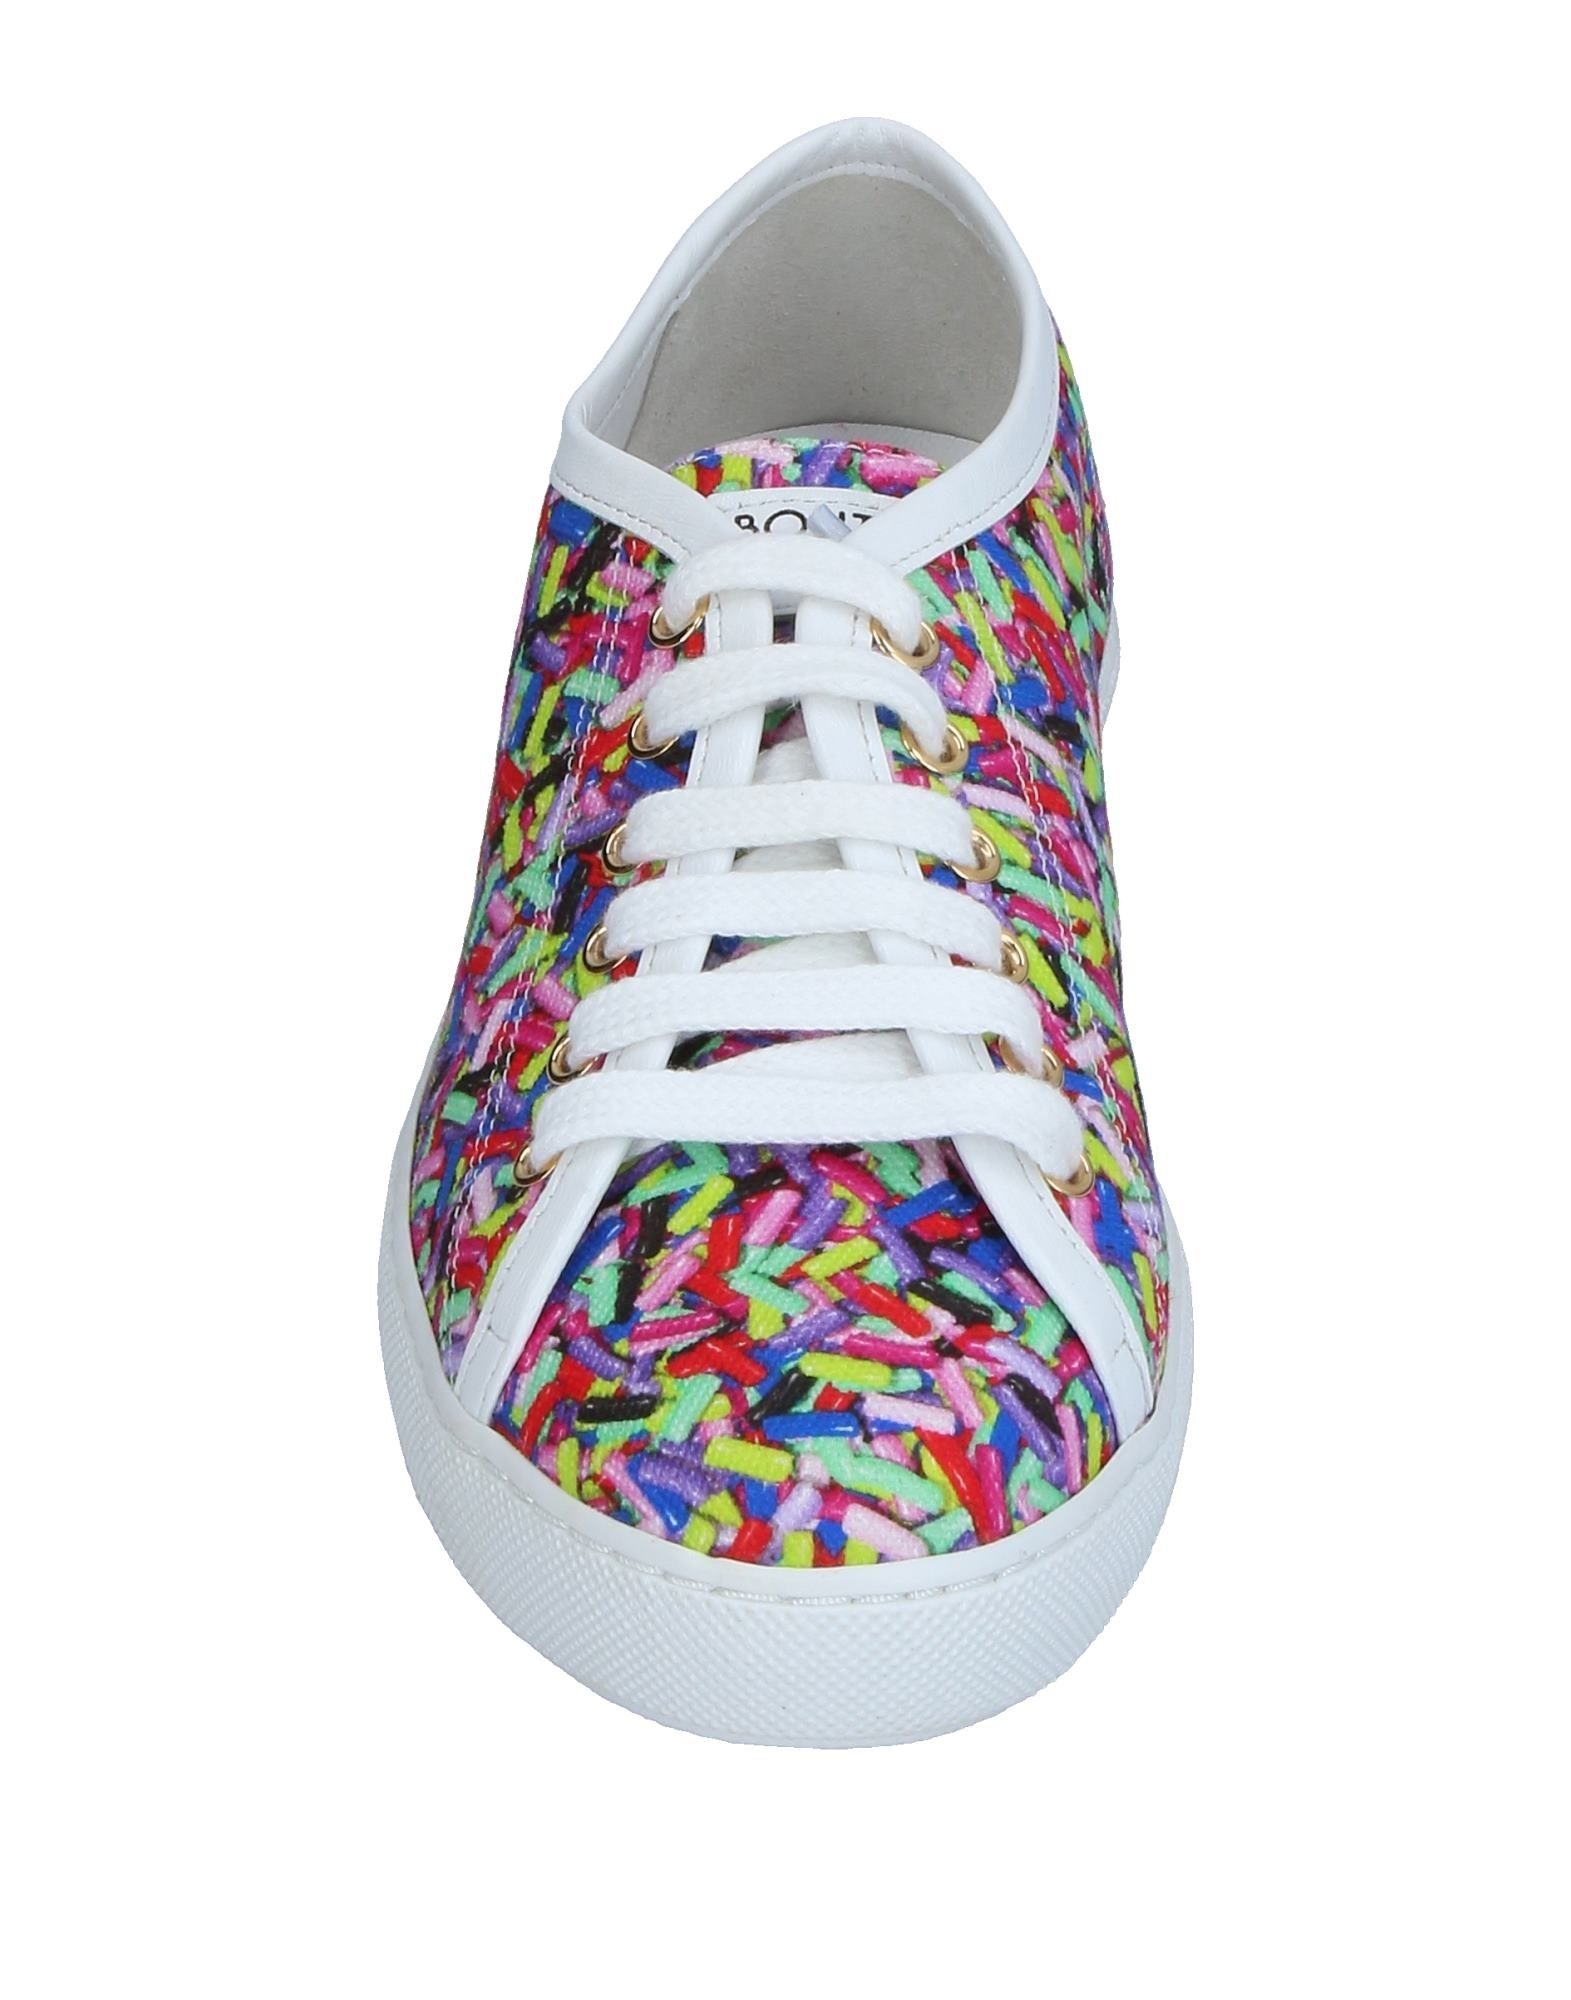 Boutique Moschino Sneakers Damen   Damen 11283883EB 0e49f1